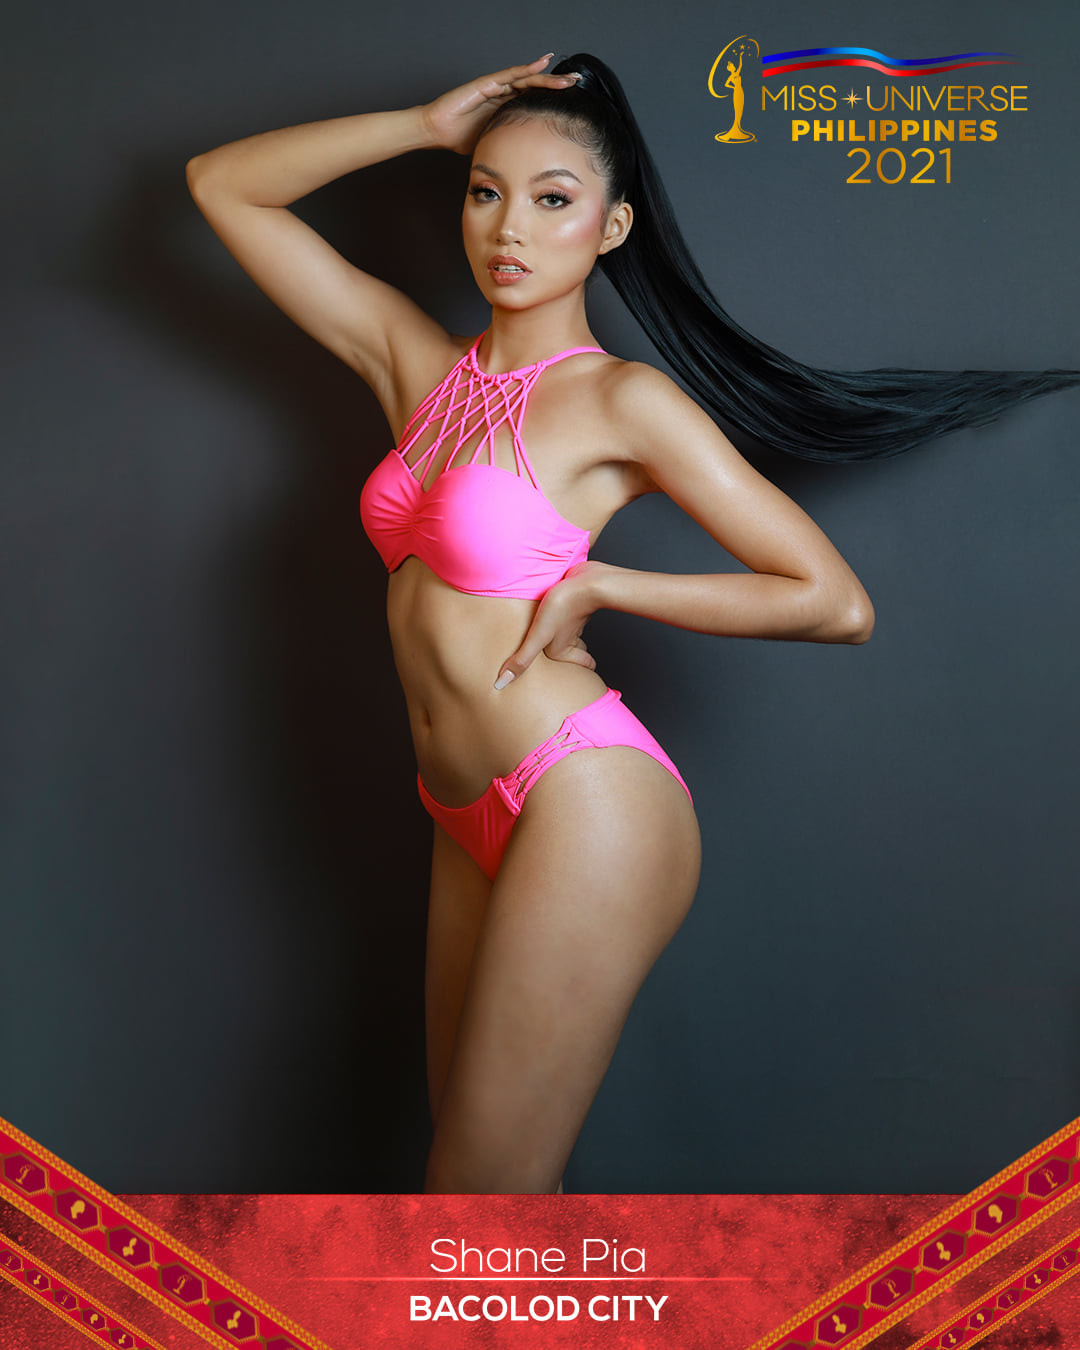 75 pre-candidatas a miss universe philippines 2021. RTdYjR